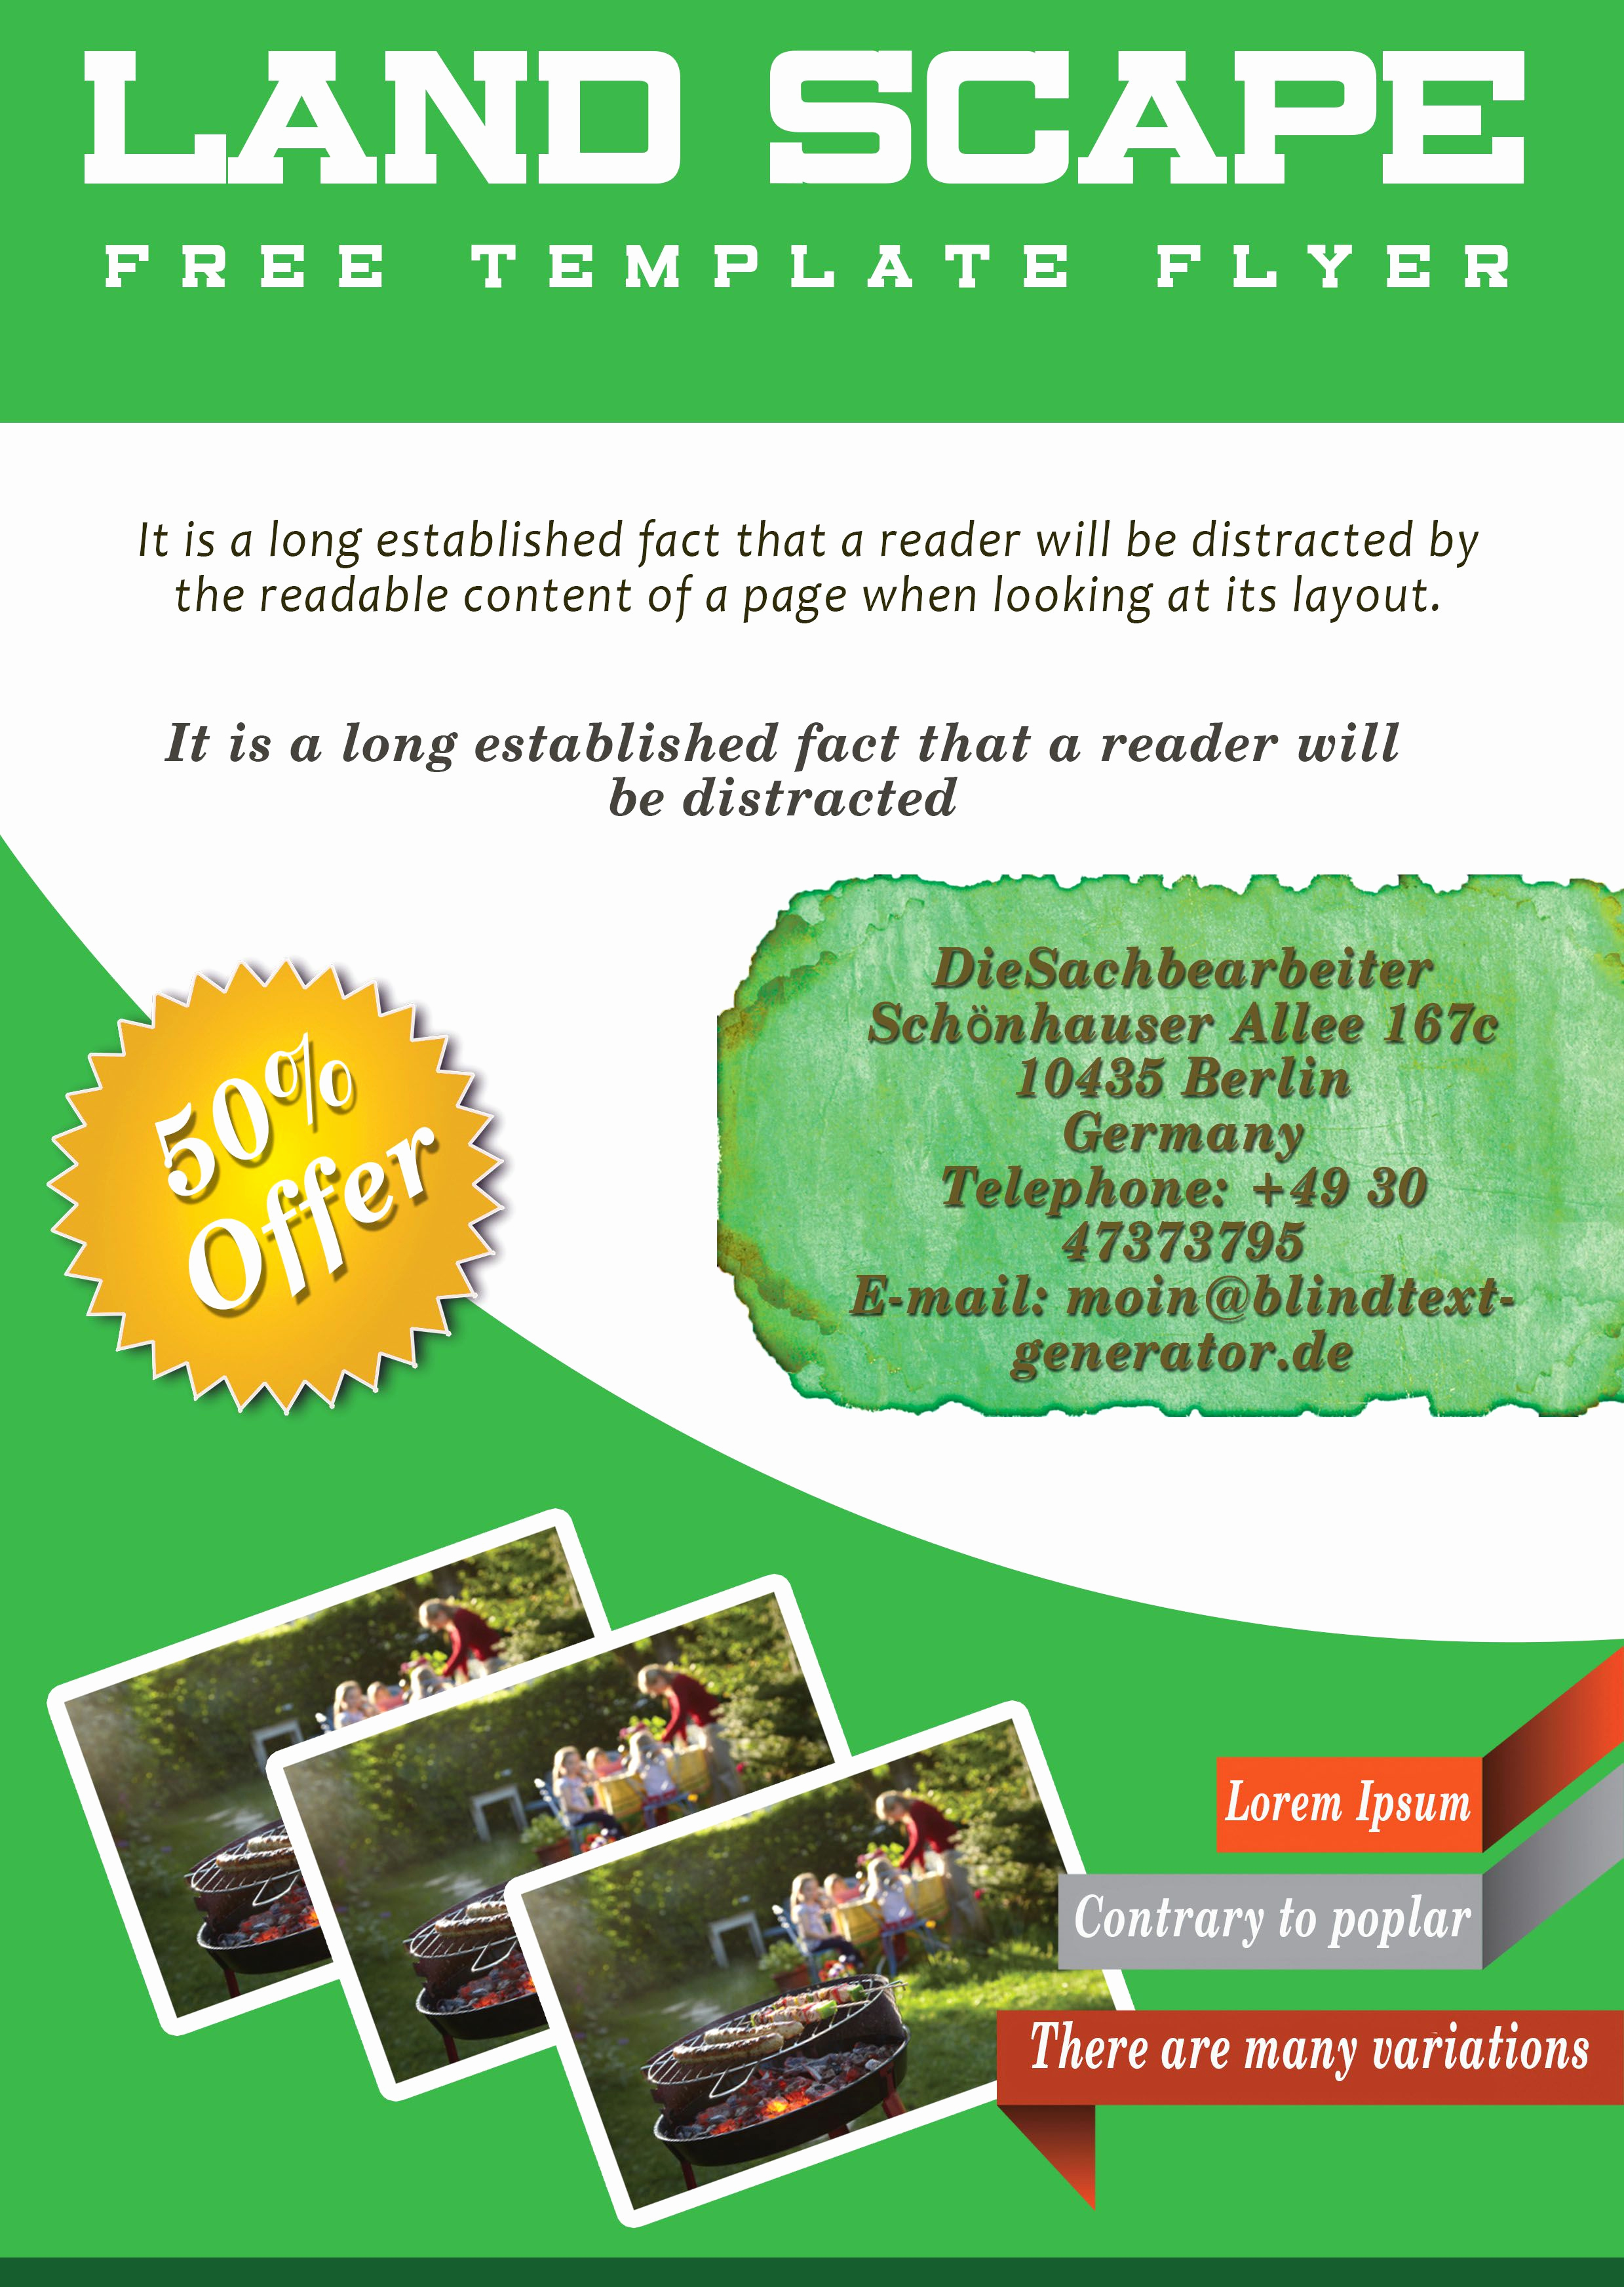 Free Download Flyer Template Lovely Free Landscaping Flyer Templates to Power Lawn Care